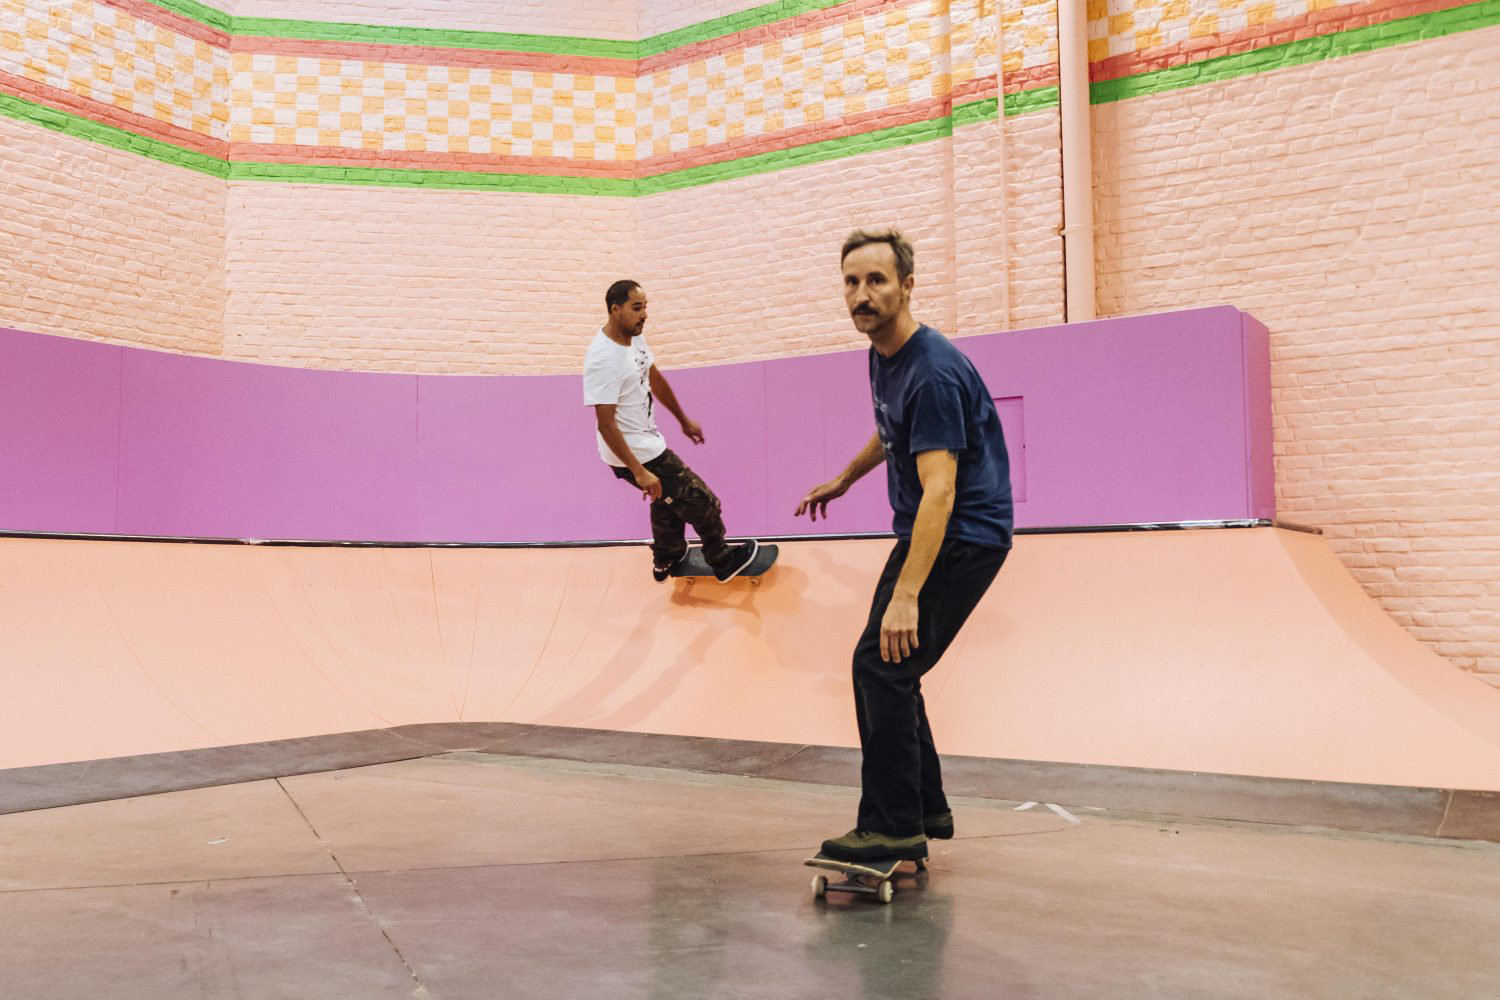 Yinka Ilori drenches Roubaix's skatepark in fluorescent paint padstyle